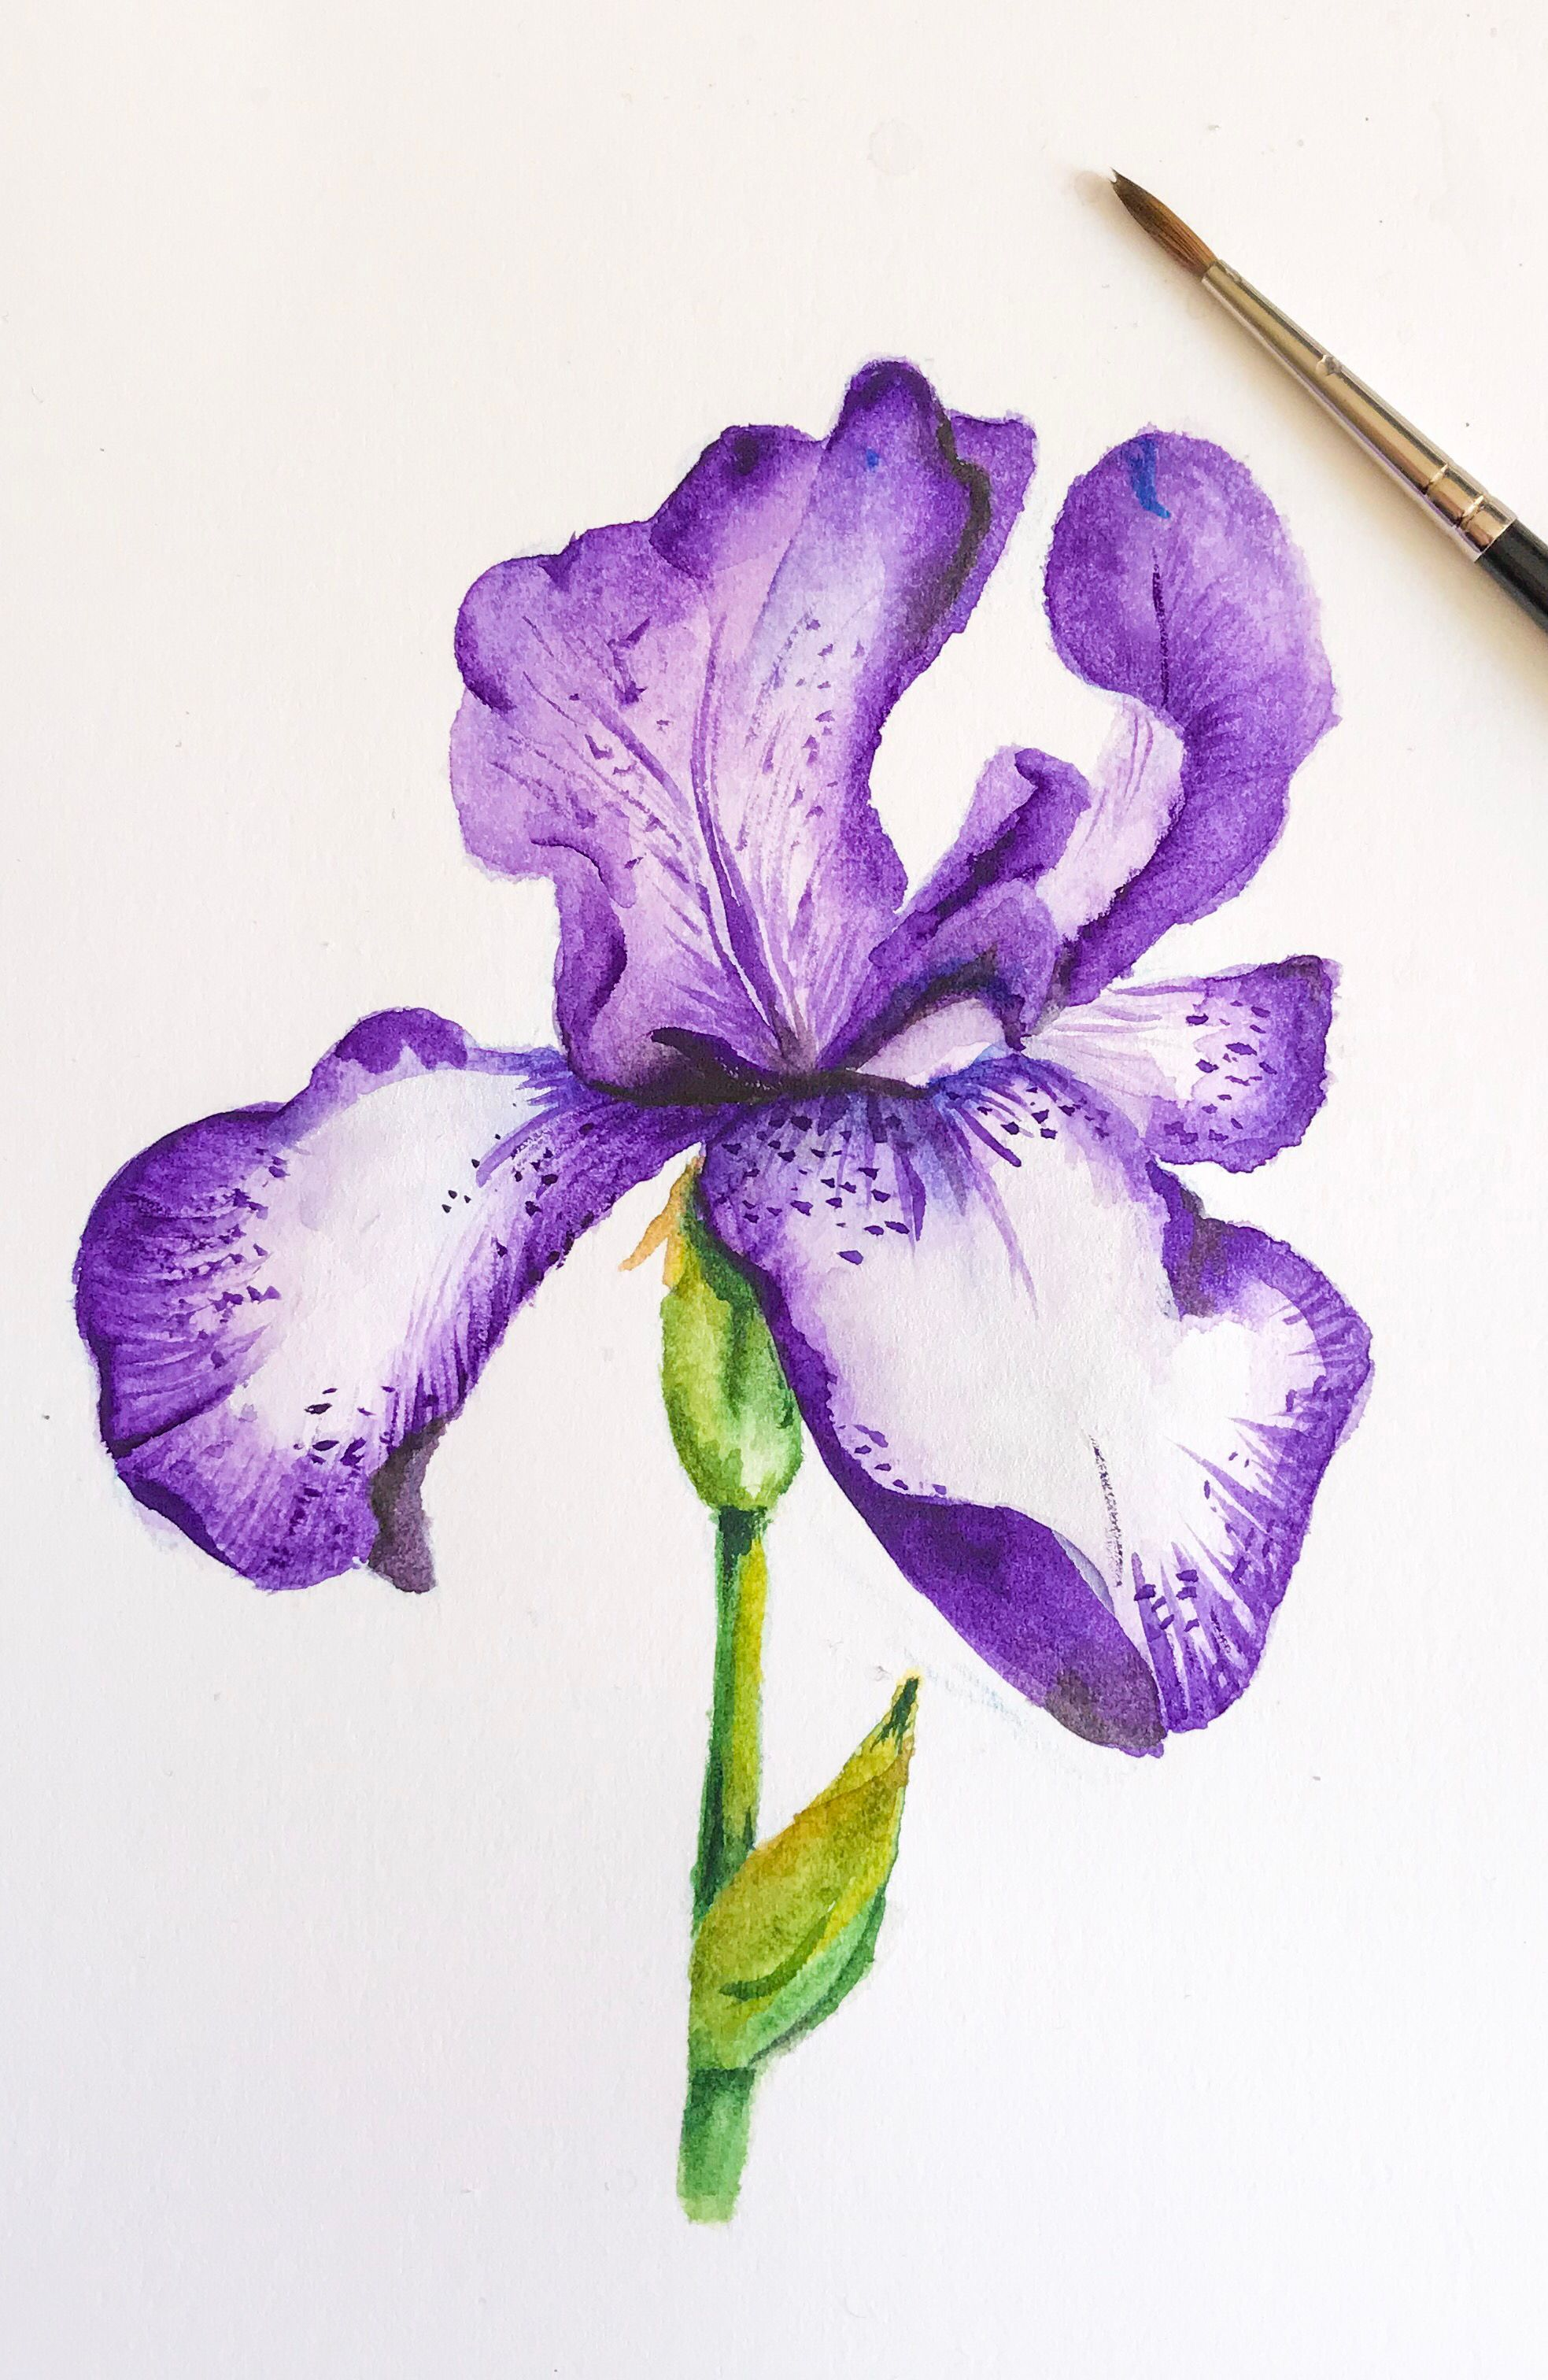 Watercolour Iris Flower Watercolour Watercolor Iris Flower Art Artwork Handpainted Painting Lo Flower Art Drawing Flower Drawing Iris Painting